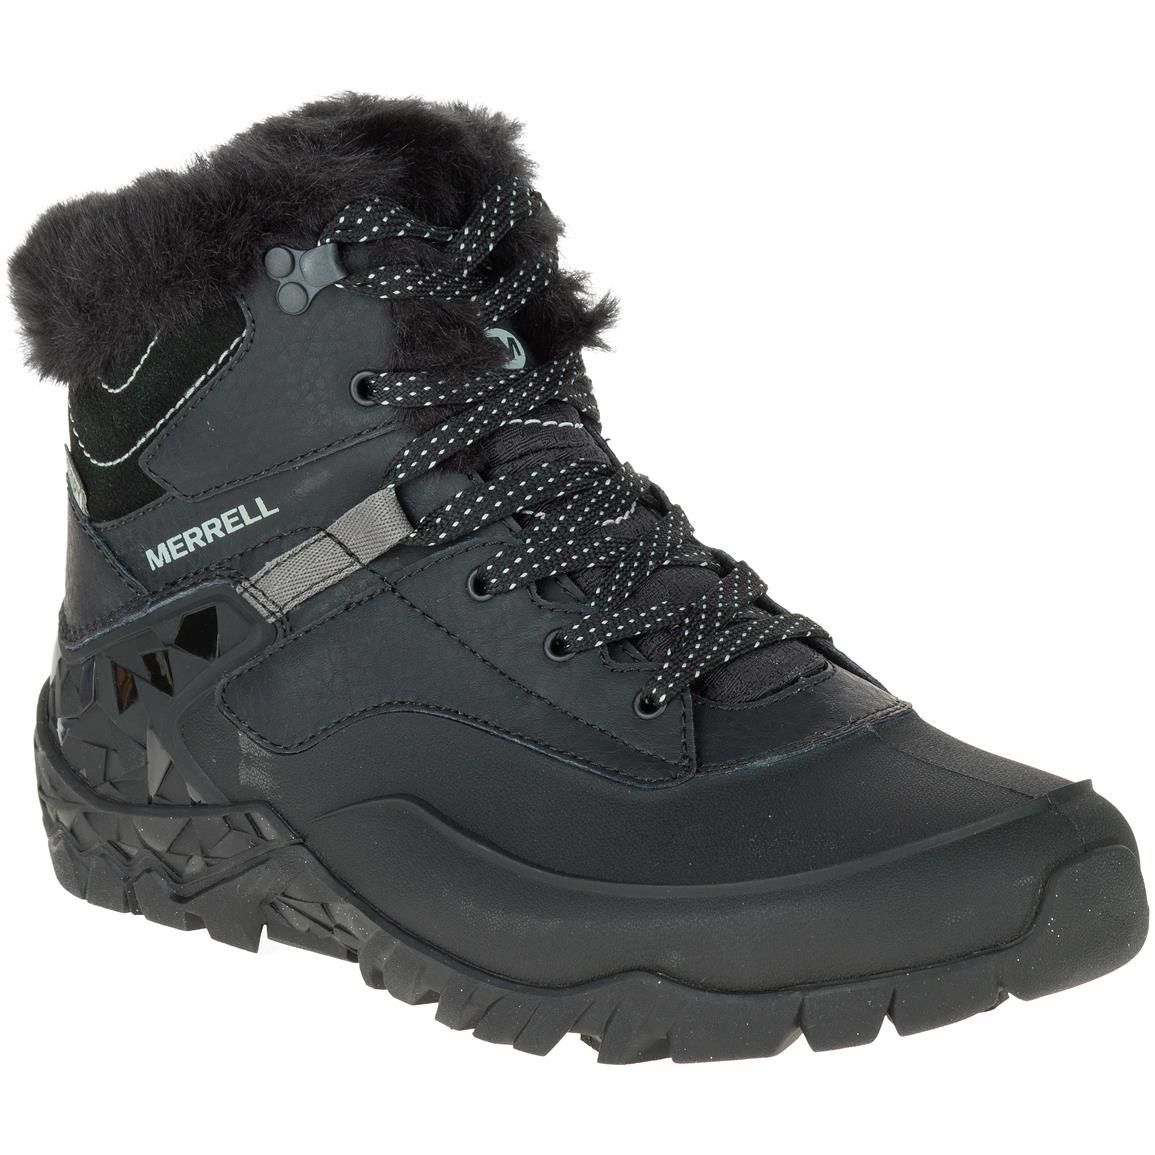 Merrell Women's Aurora 6 Ice+Waterproof Hiking Boots, Black